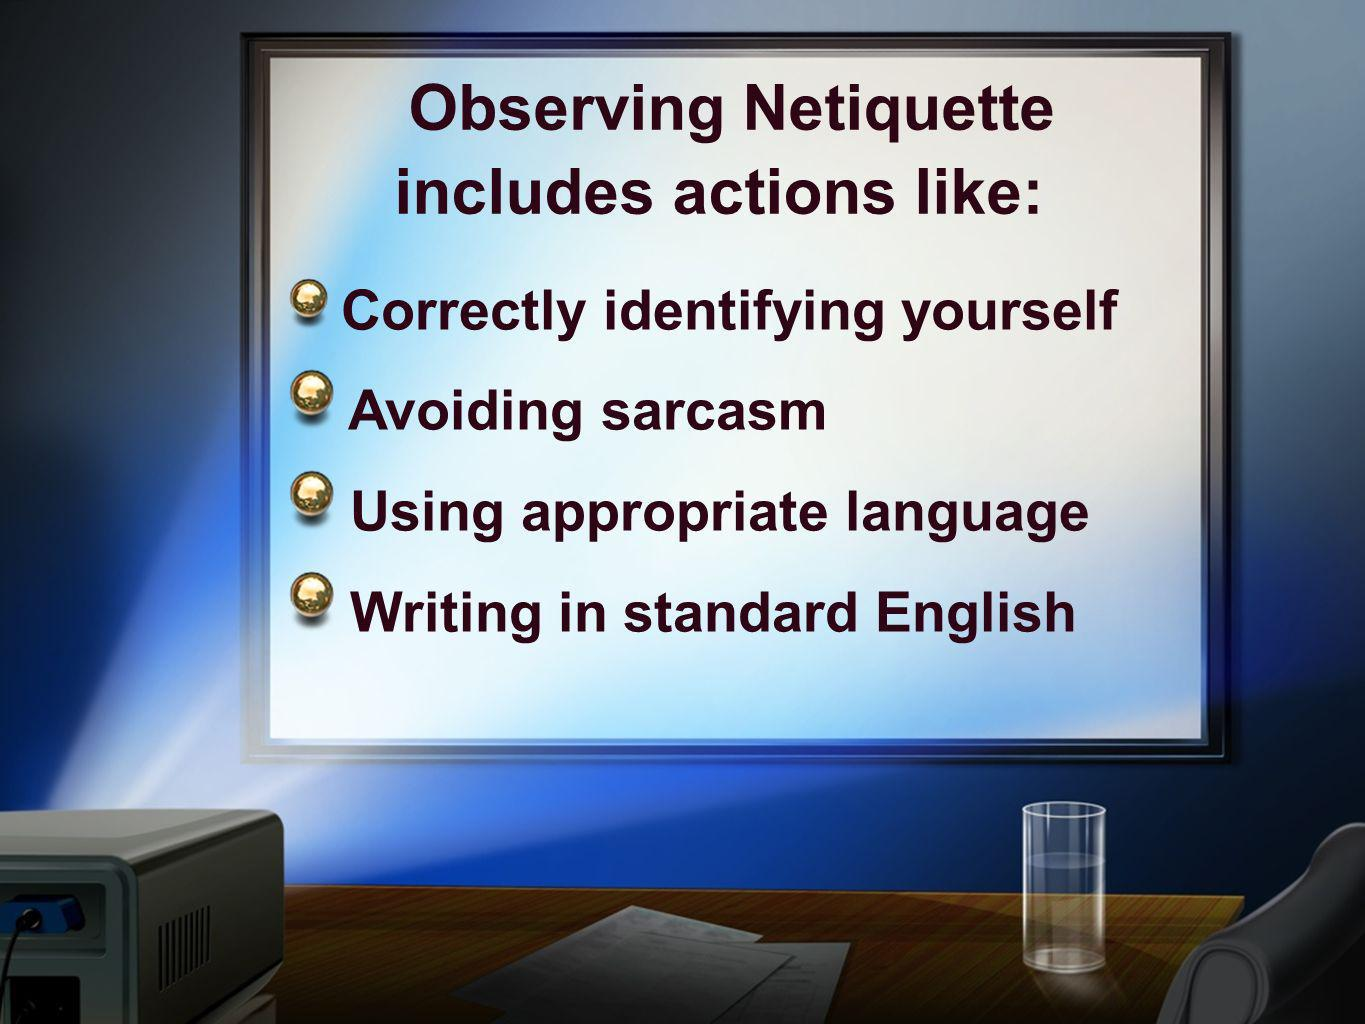 Observing Netiquette includes actions like: Correctly identifying yourself Avoiding sarcasm Using appropriate language Writing in standard English